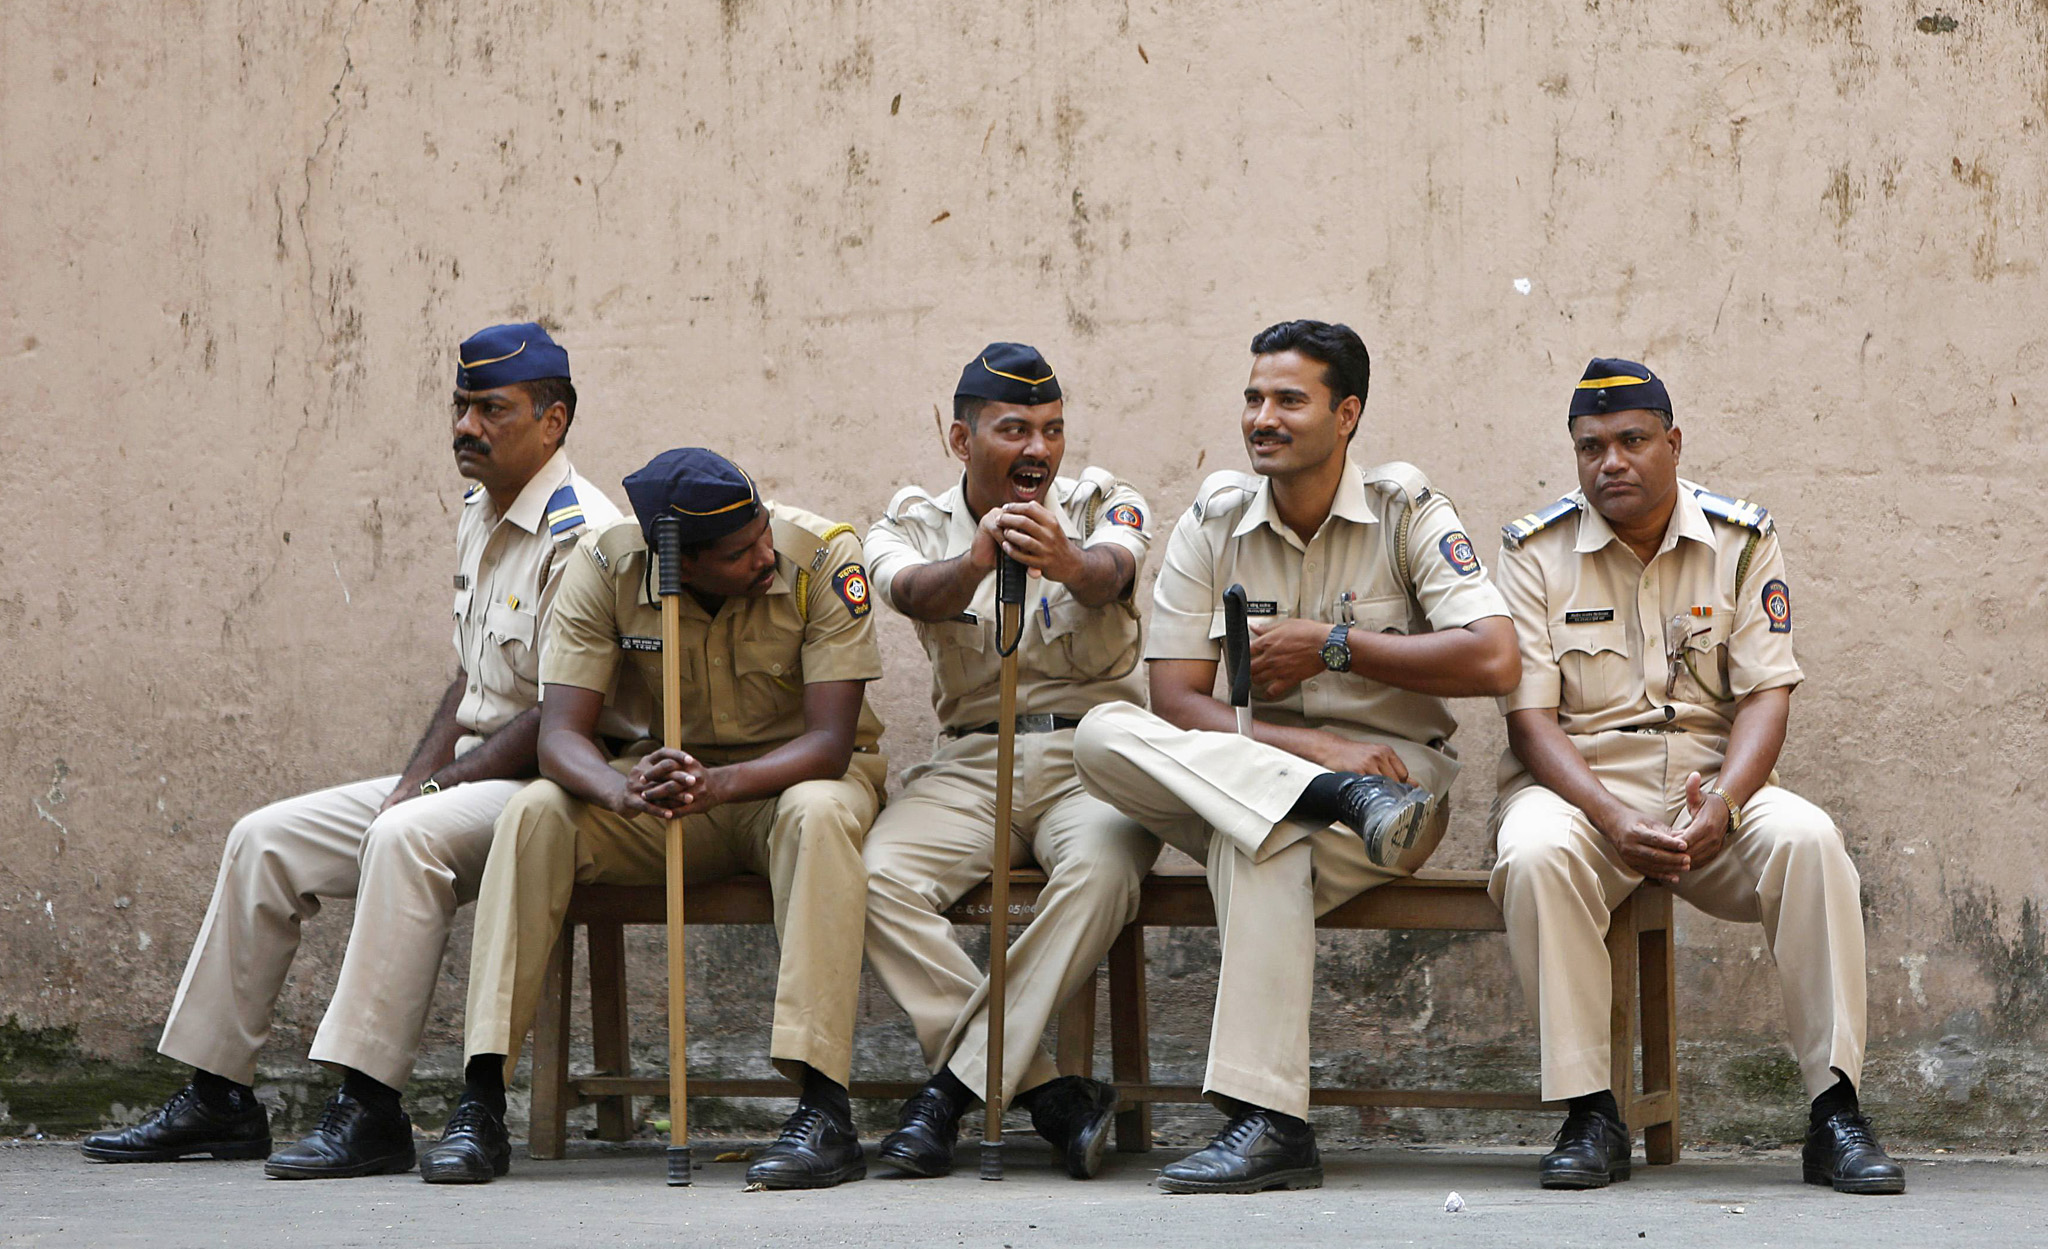 A policeman yawns as he sits with his colleagues outside a court where the case of the gang-rape of a photojournalist was heard in Mumbai...A policeman (C) yawns as he sits with his colleagues outside a court where the case of the gang-rape of a photojournalist was heard in Mumbai March 20, 2014. Four men were found guilty on Thursday of the gang-rape of a photojournalist last year in Mumbai, an attack that sparked street protests in the city and raised fresh questions about attitudes to women in the world's largest democracy. The four men convicted of gang-rape are due to be sentenced on Friday, prosecution lawyer Ujjwal Nikam told reporters outside the Mumbai court where the case was heard. REUTERS/Mansi Thapliyal (INDIA - Tags: CRIME LAW)